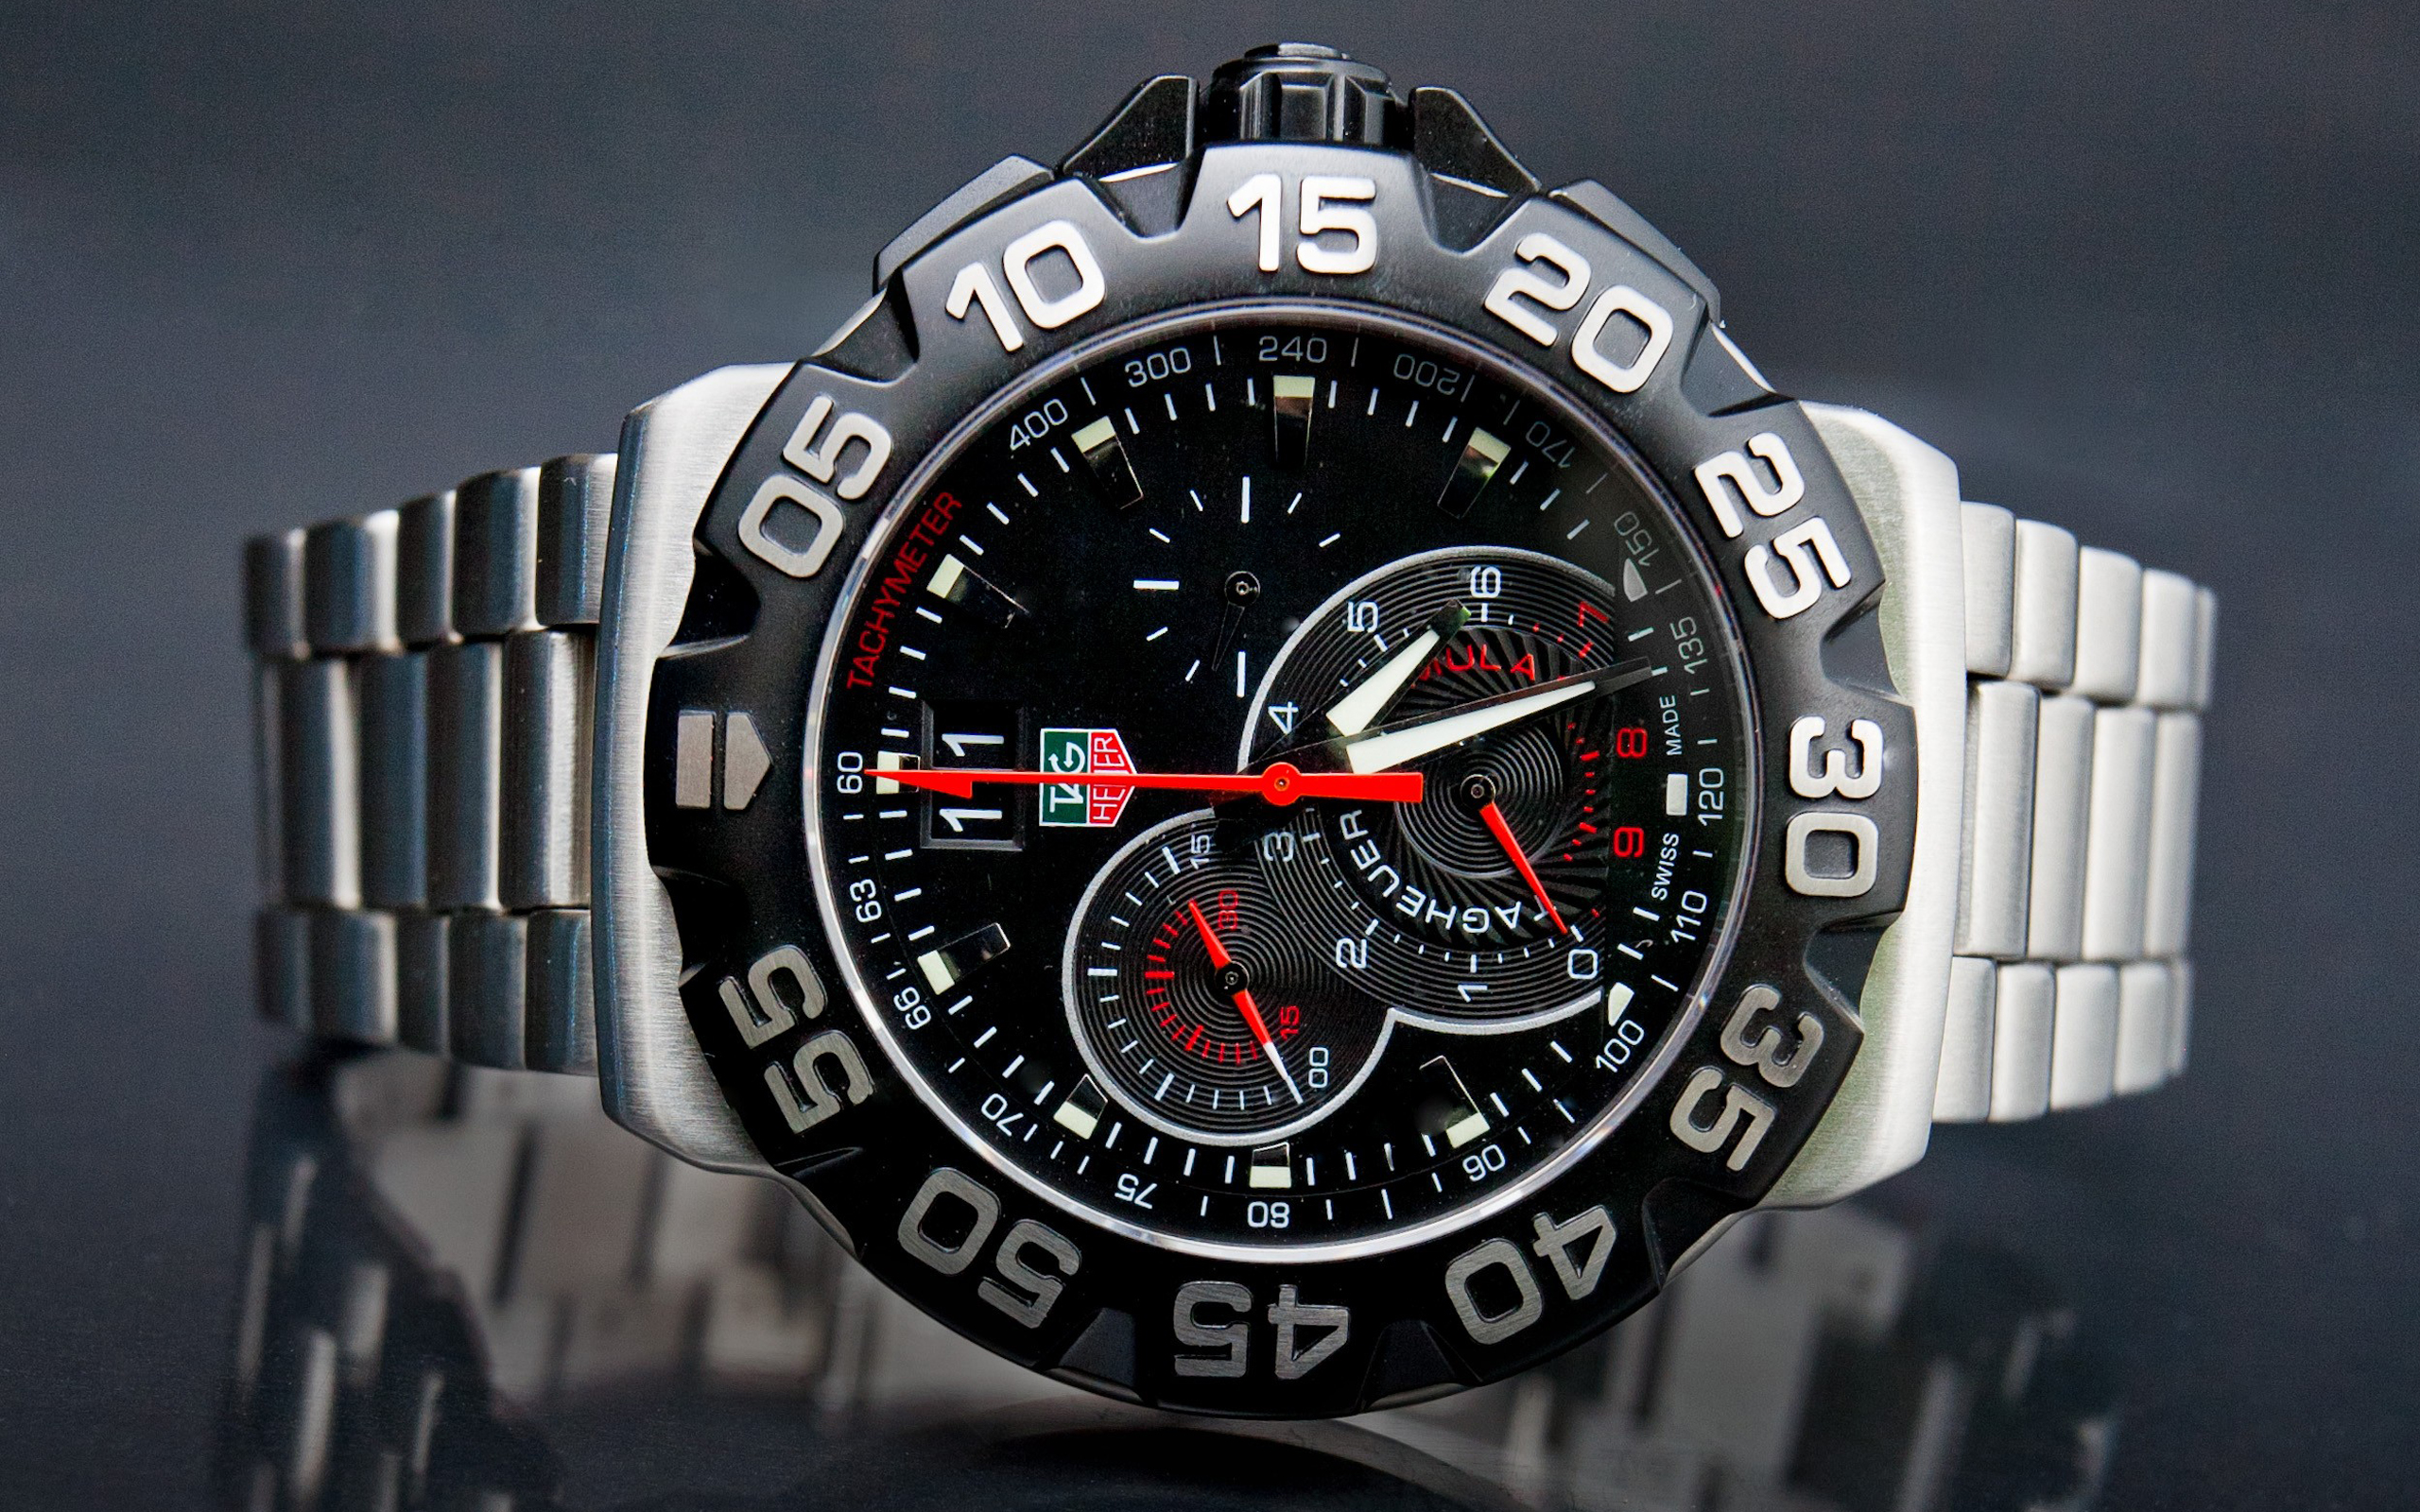 duramo performance mens chronograph com watches alarm football watch main adidas watchshop gents